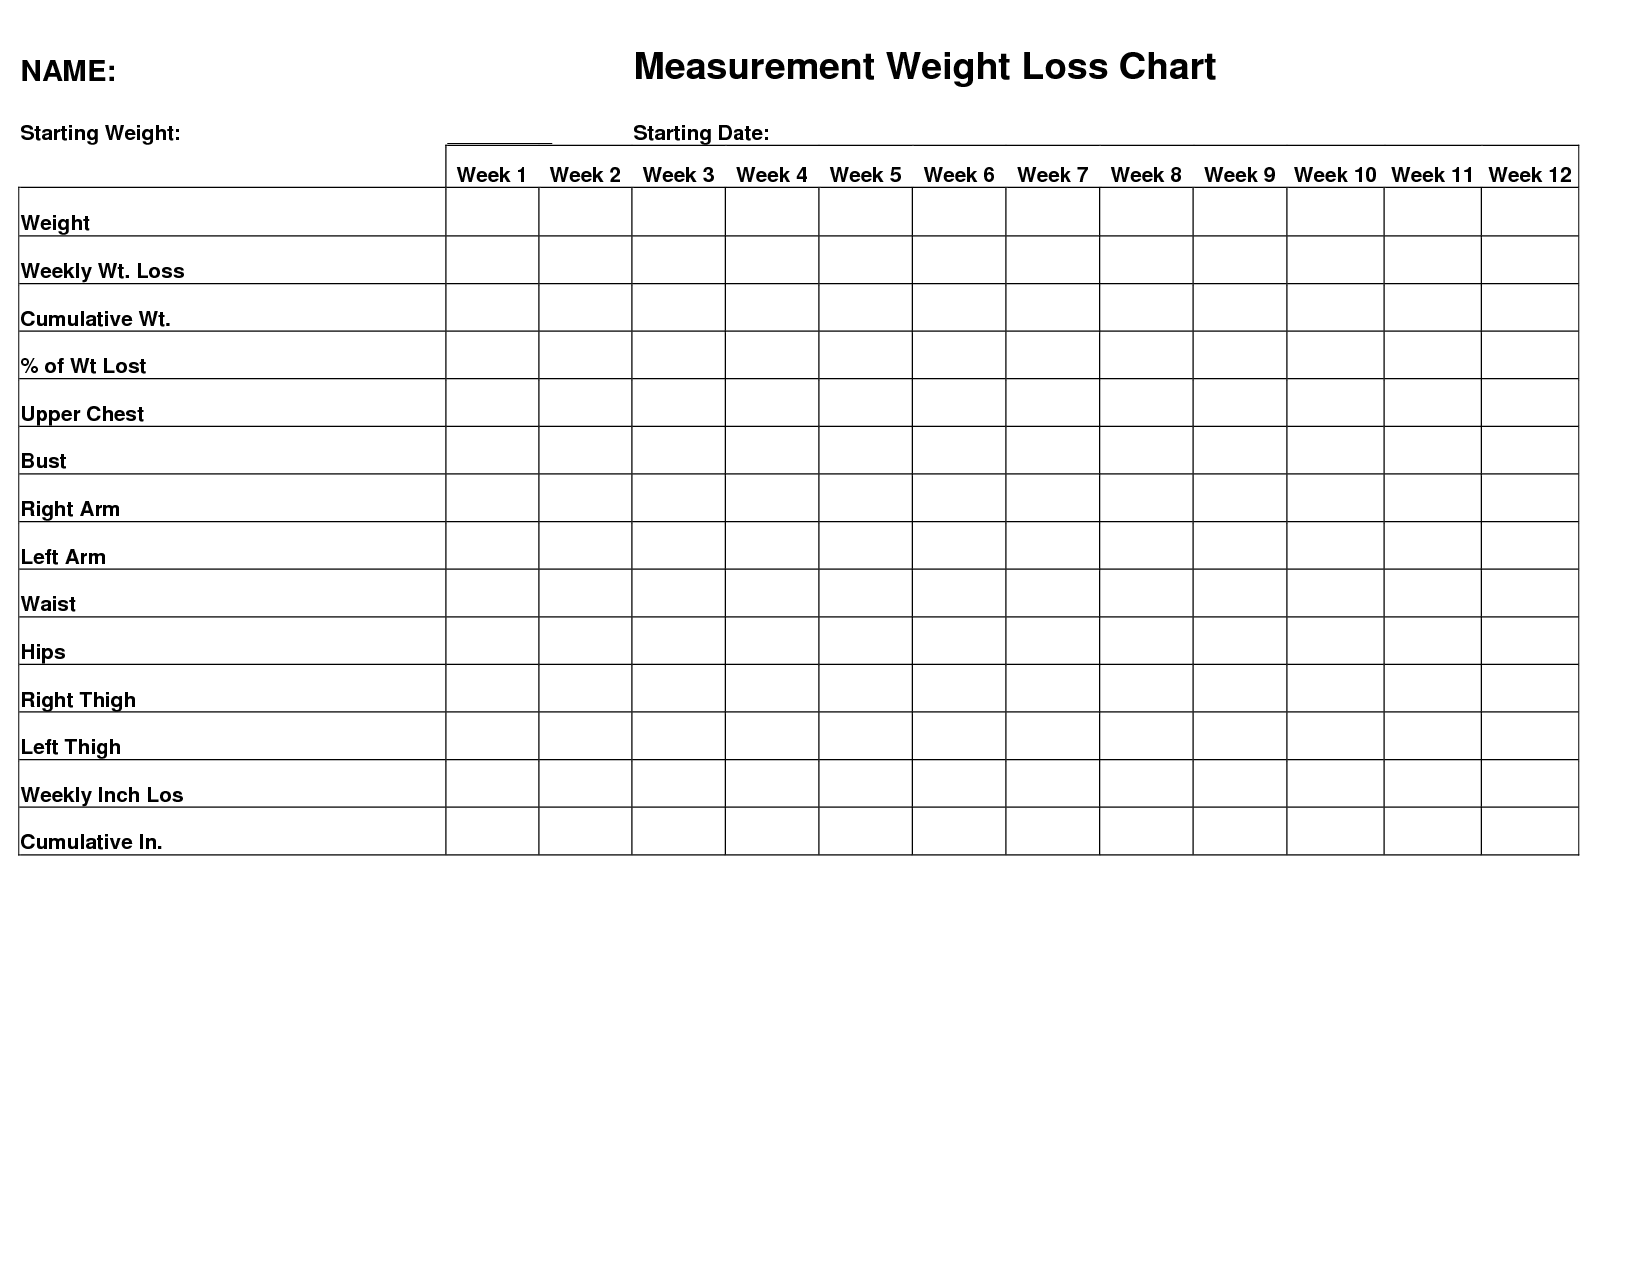 female weight measurement body silhouette outline measurement weight loss chart name measurement